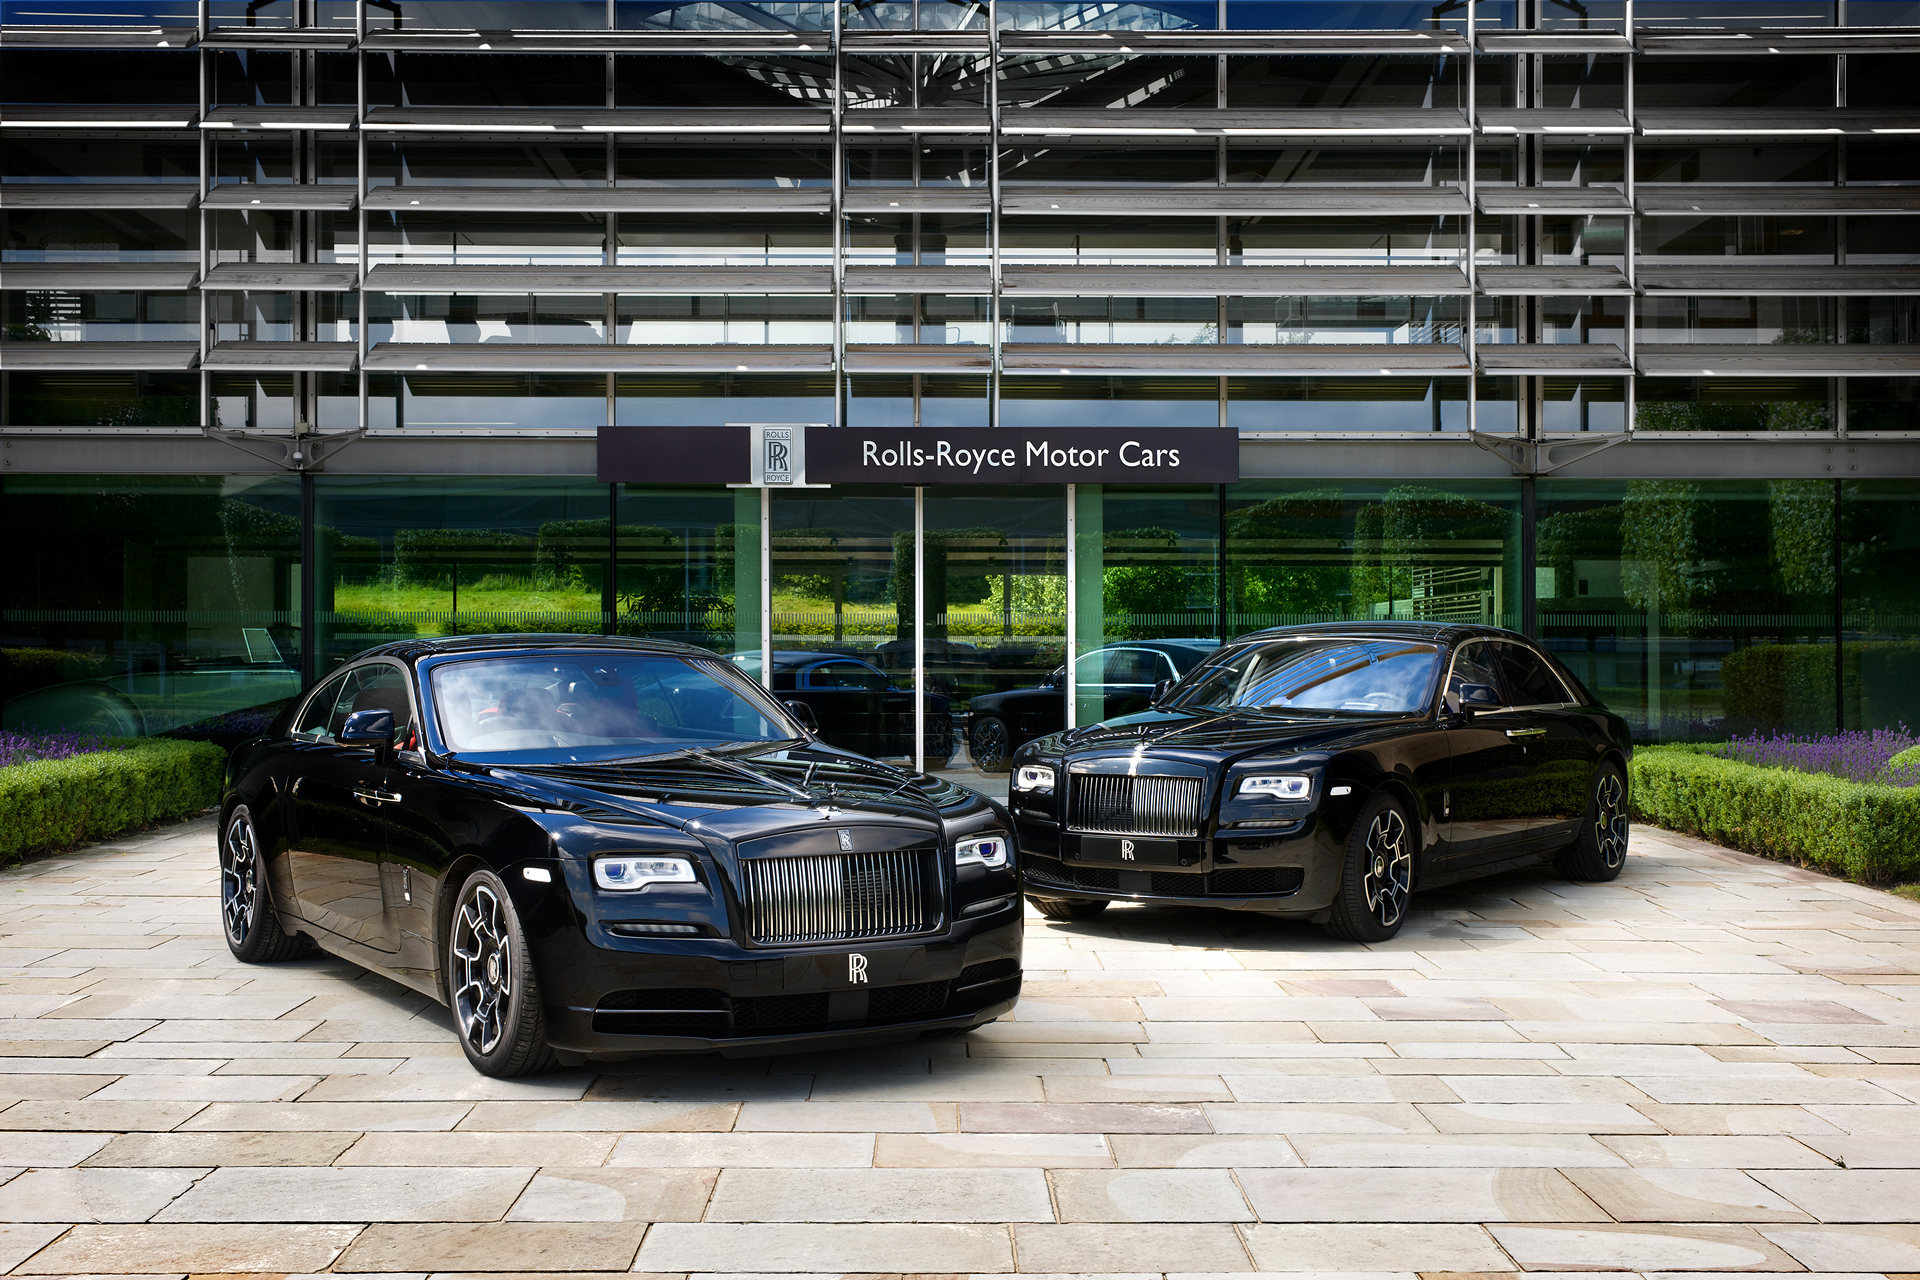 Rolls-Royce Celebrates 2016 Goodwood With a Dark and Edgy Presence © BMW AG